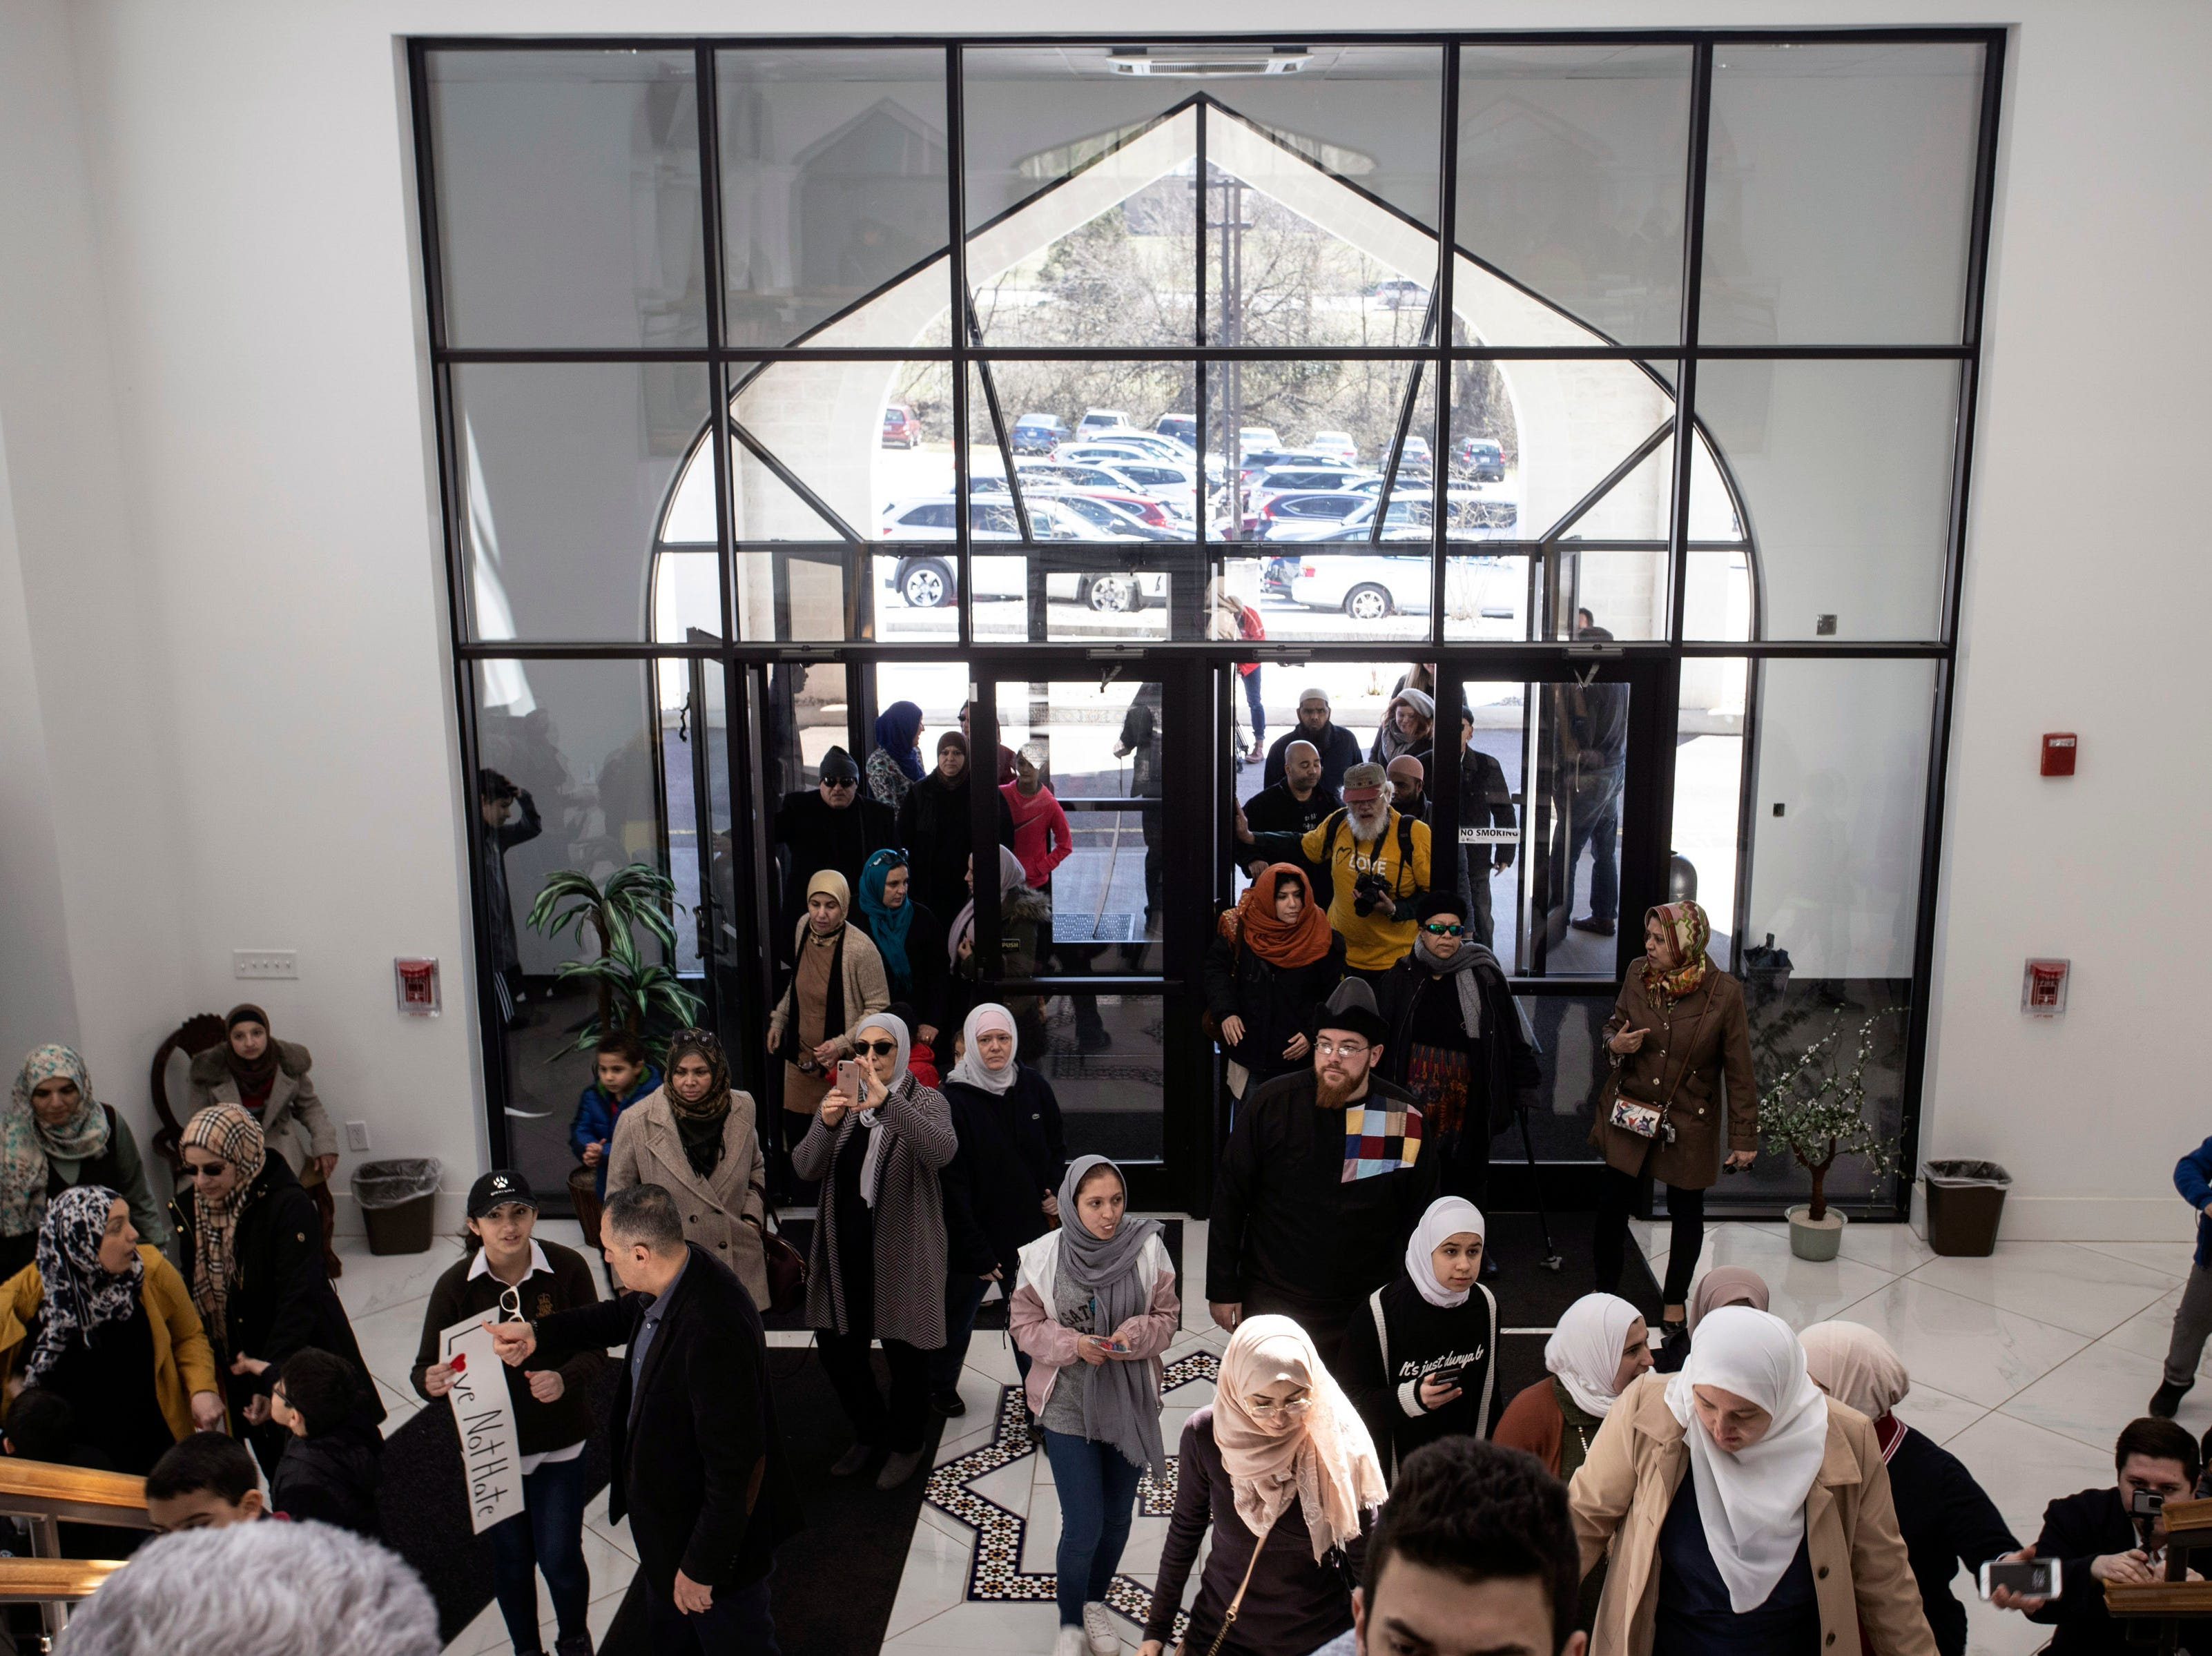 The Muslim Community Center of Louisville filled up on Saturday afternoon as hundreds mourned the victims of the mass shooting at a New Zealand mosque on Friday. 3/16/19